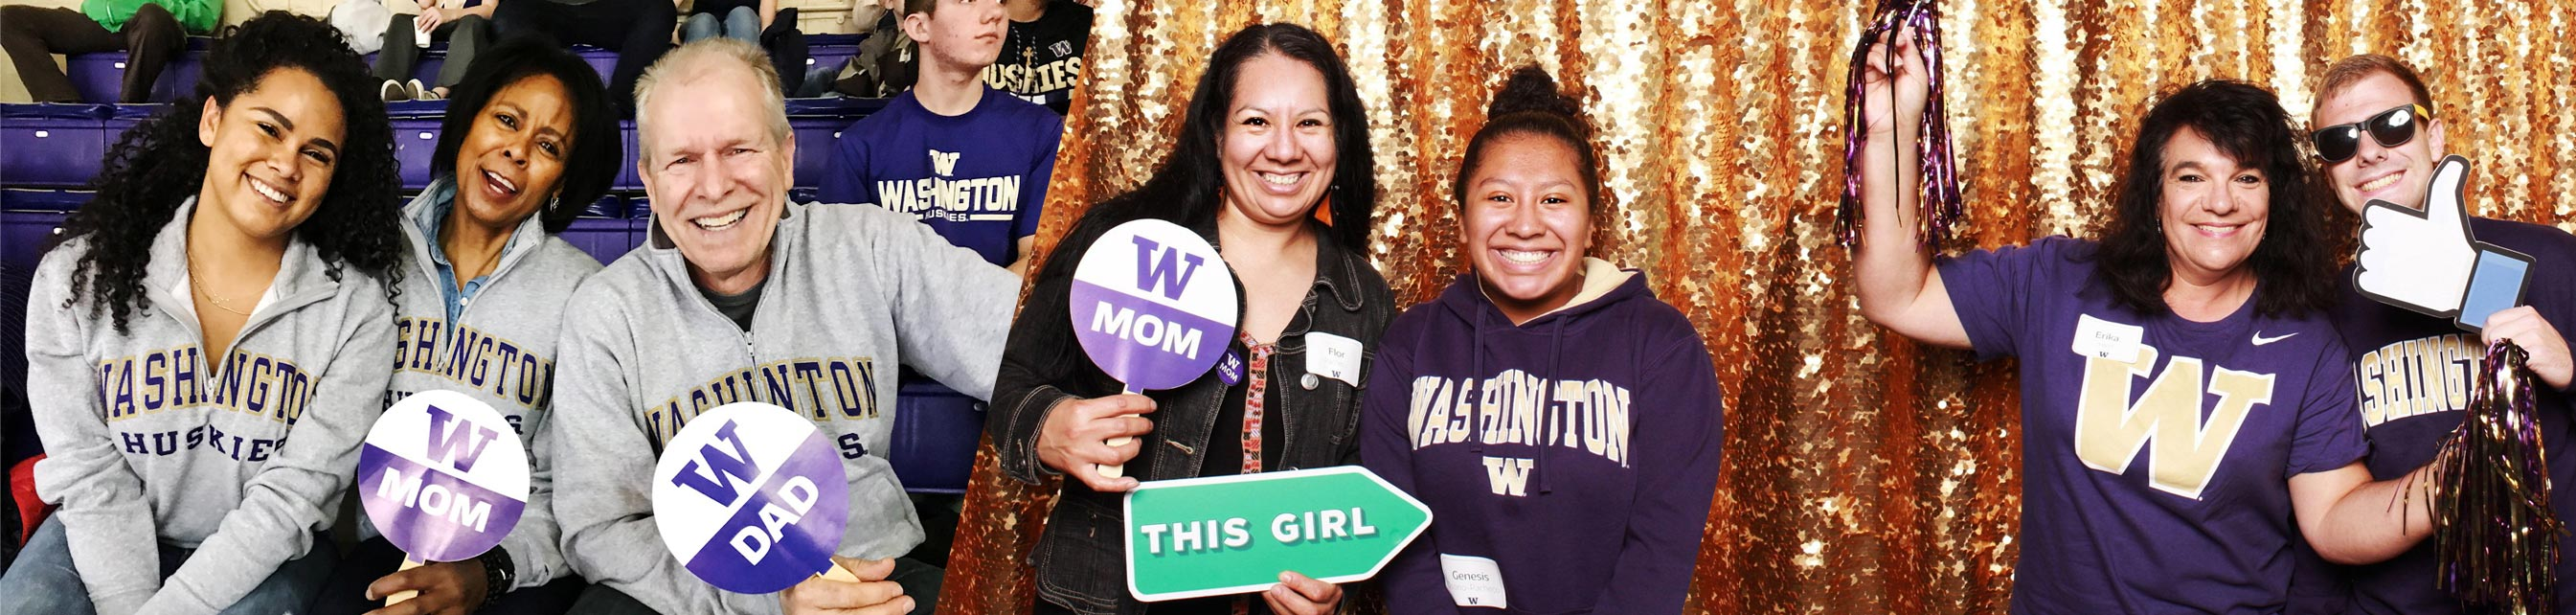 triptych showing a biracial family, a mother and daughter inside a photo booth decorated with gold streamers, a woman and man inside a photo booth decorated with gold streamers